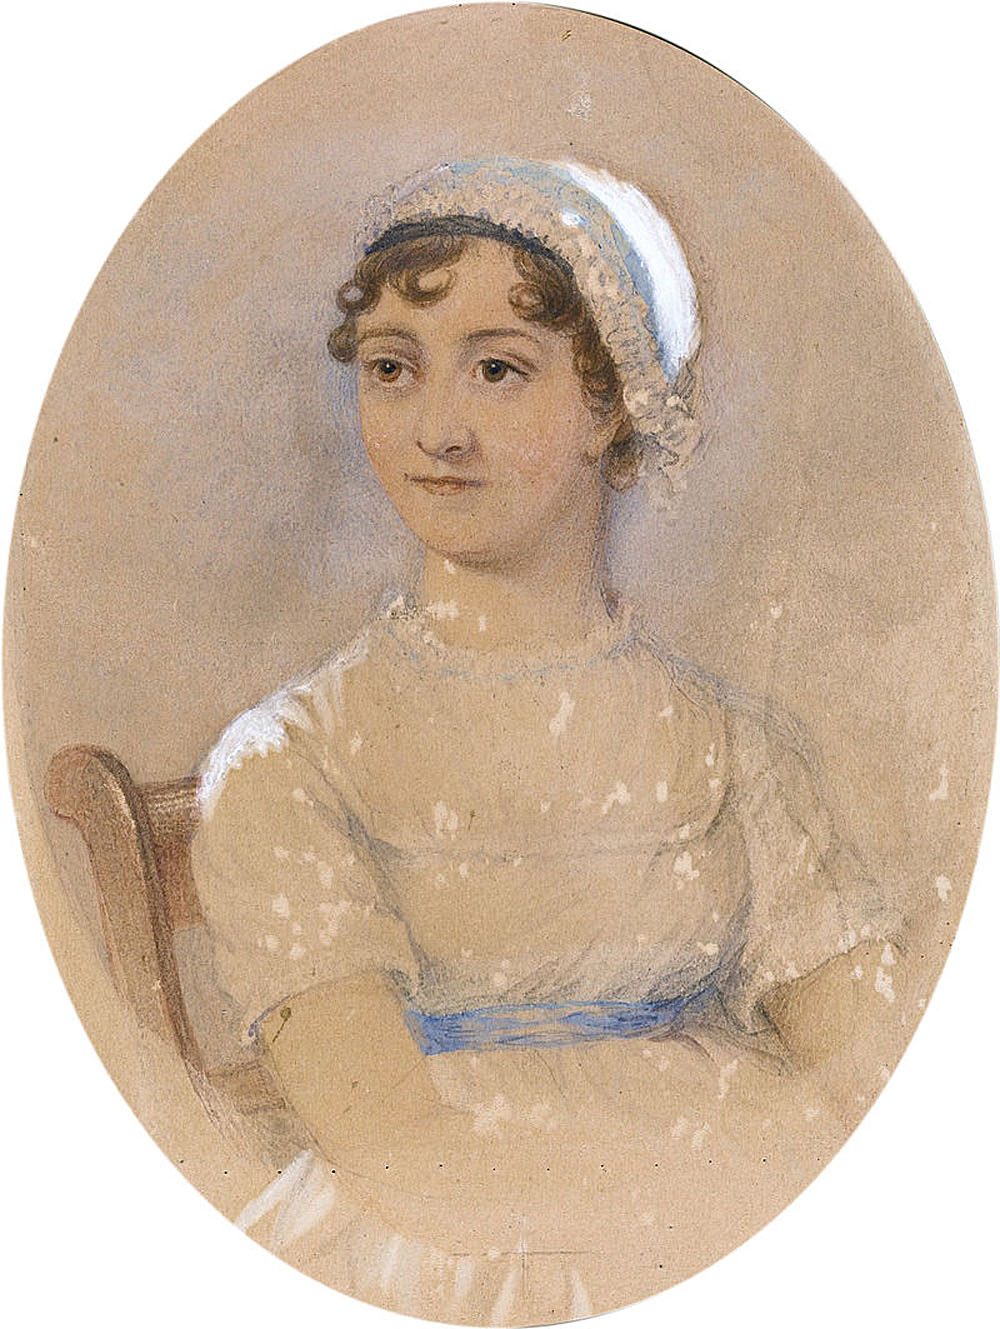 a delicate watercolour portrait of a Regency woman in a bonnet and high-waisted dress with blue sash